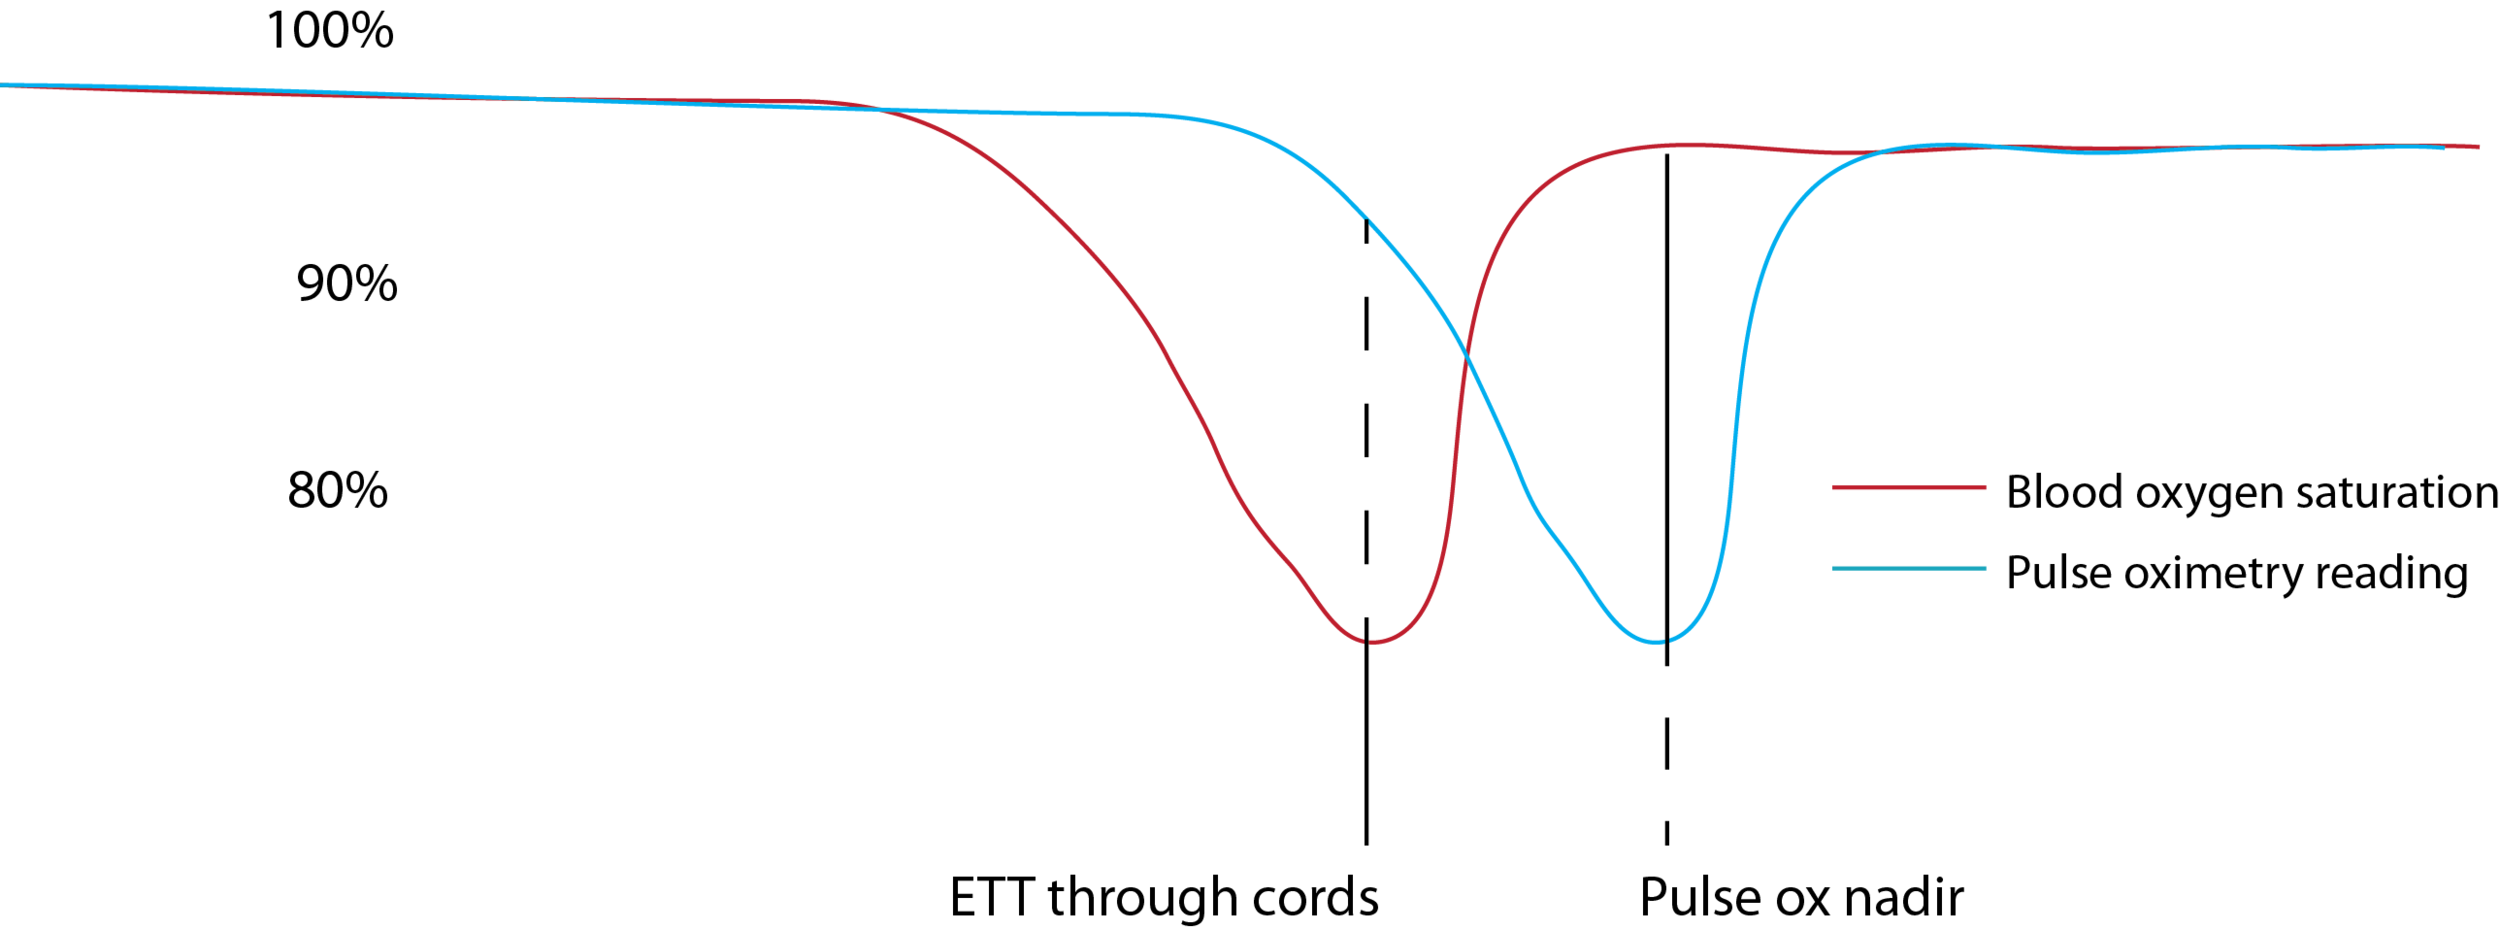 Graph displaying the false reassurance of the high pulse ox (blue) when the ETT goes through the cords, despite hypoxemia (red). Then the falsely concerningly low pulse ox nadir, although the true saturation has already recovered.